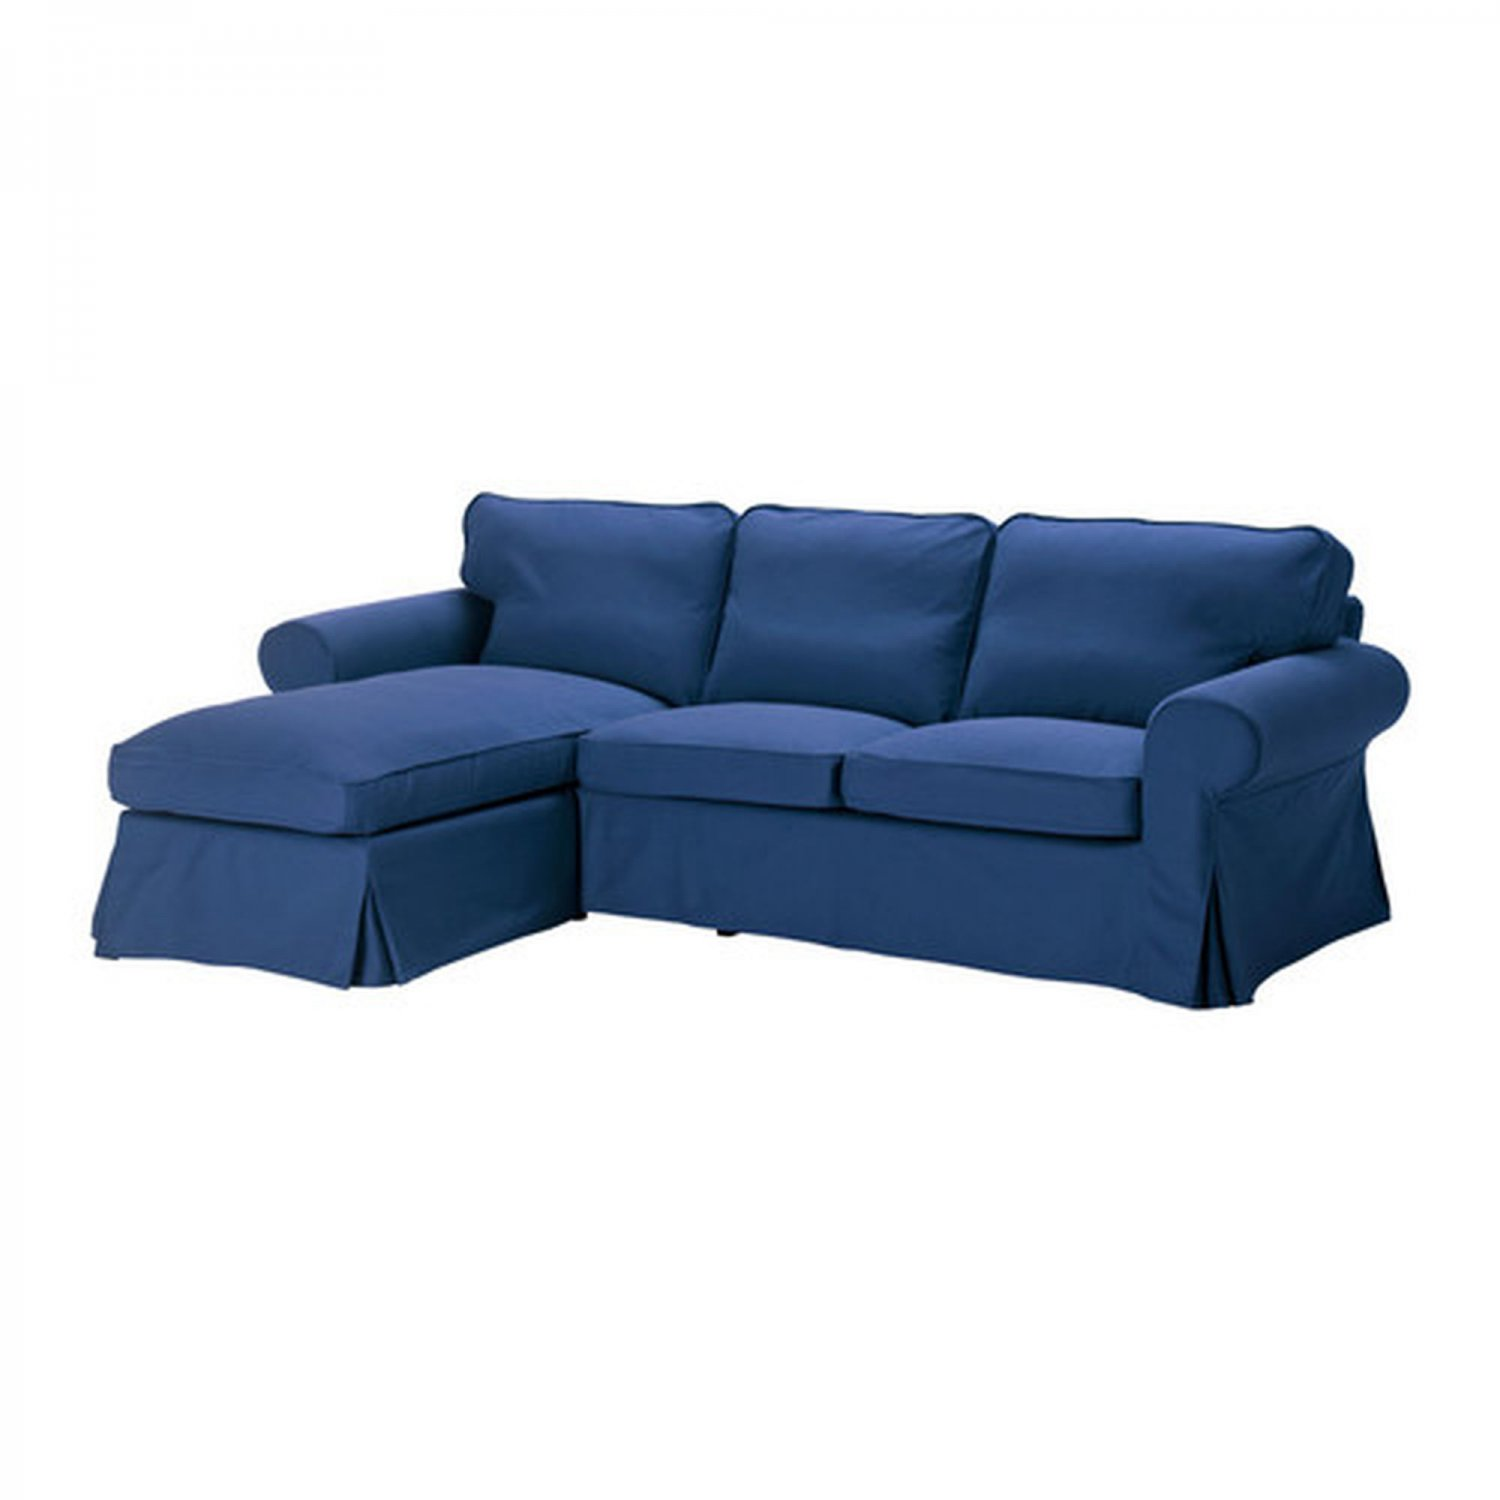 Ikea ektorp loveseat with chaise lounge cover slipcover for Chaise longe sofa